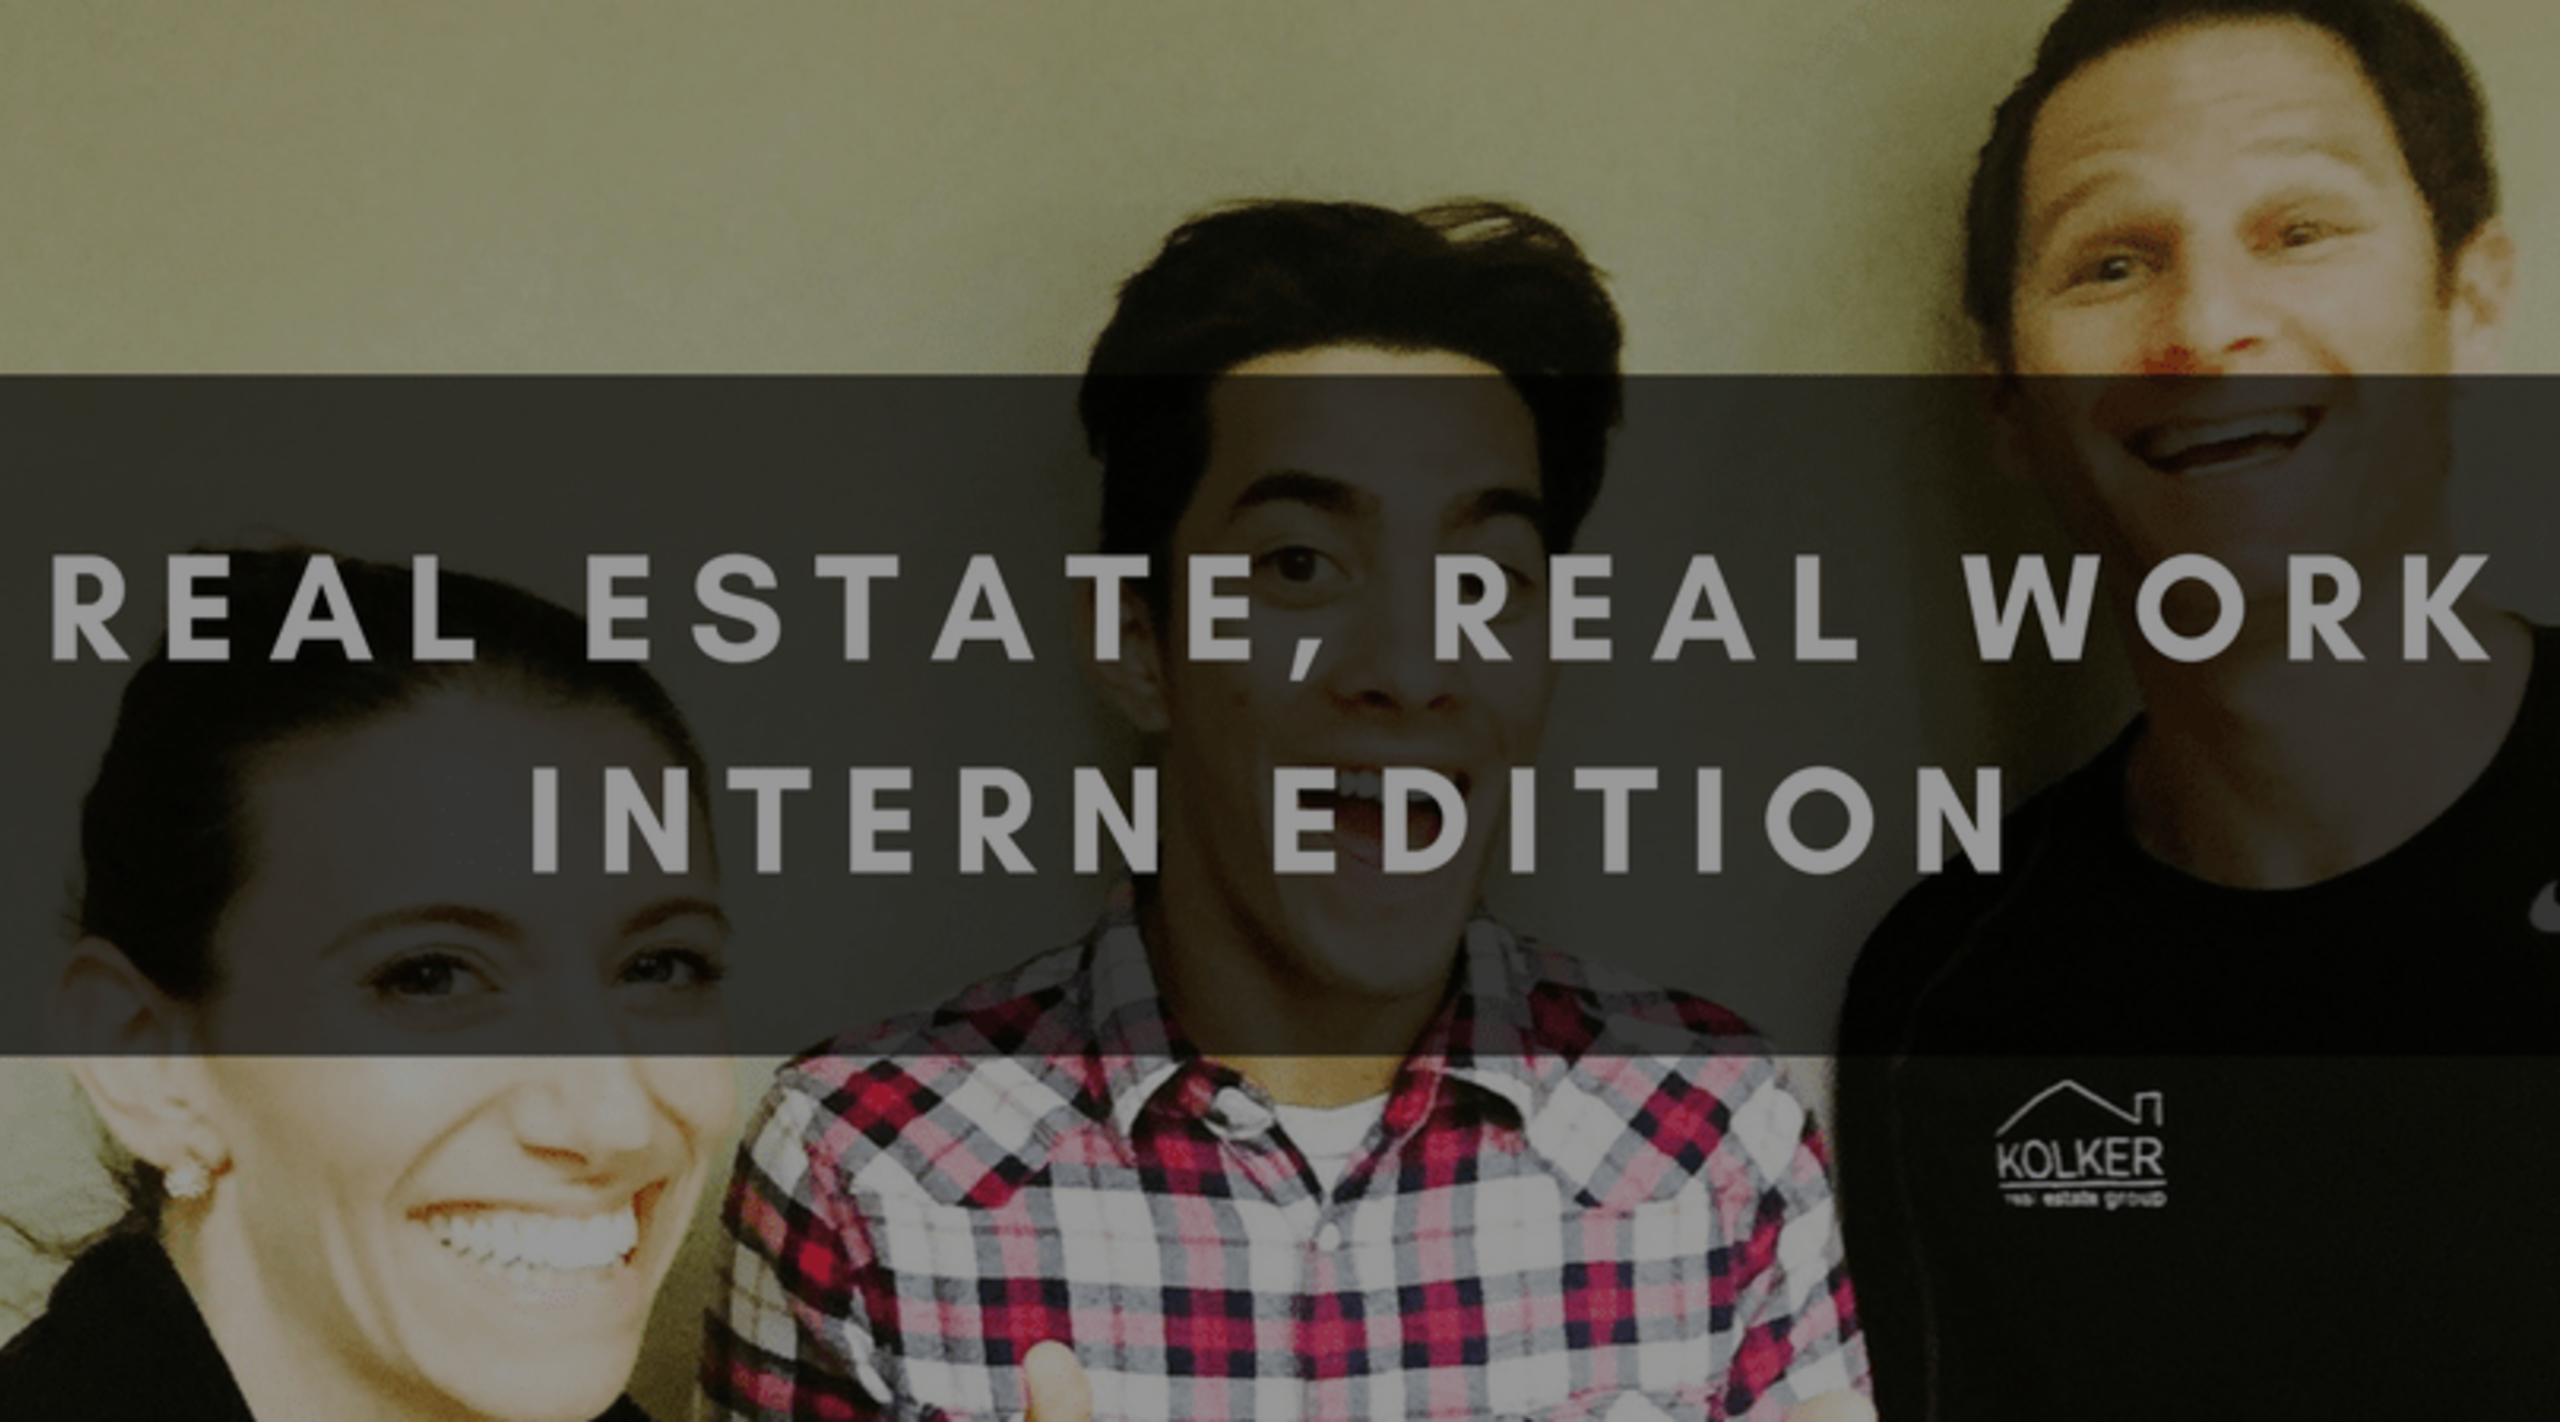 REAL ESTATE, REAL WORK | INTERN EDITION